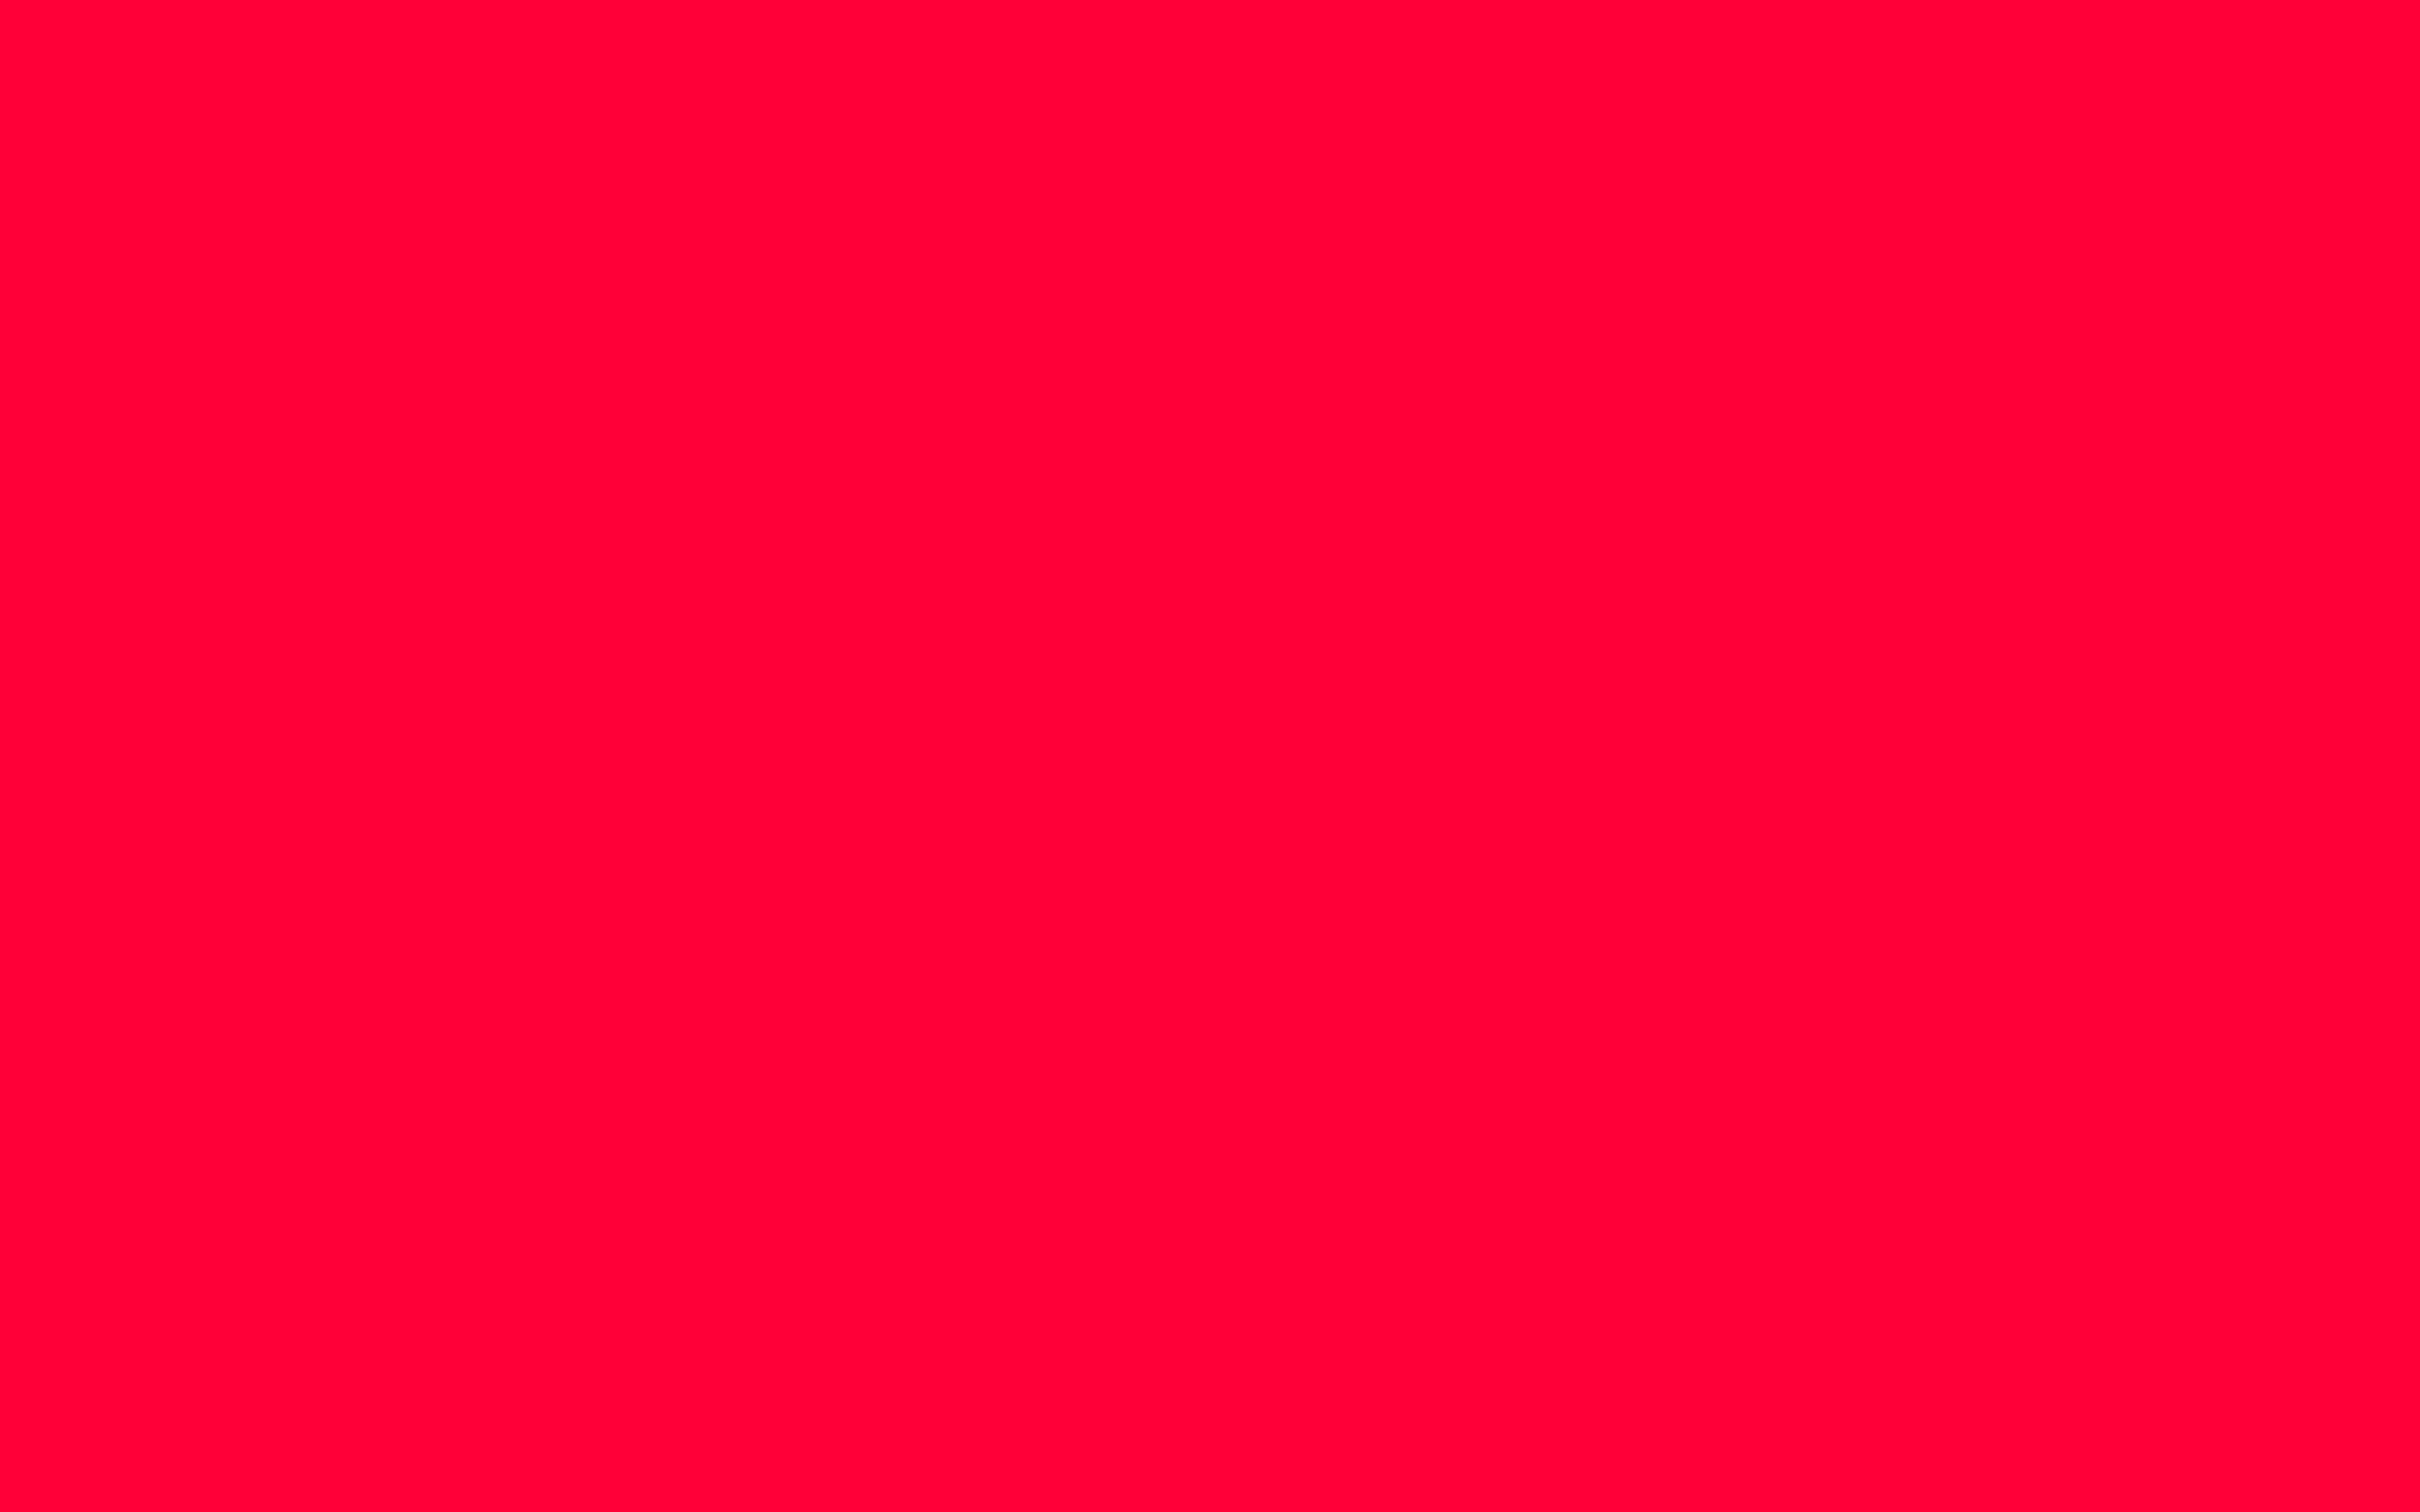 Carmine Red Solid Color Background